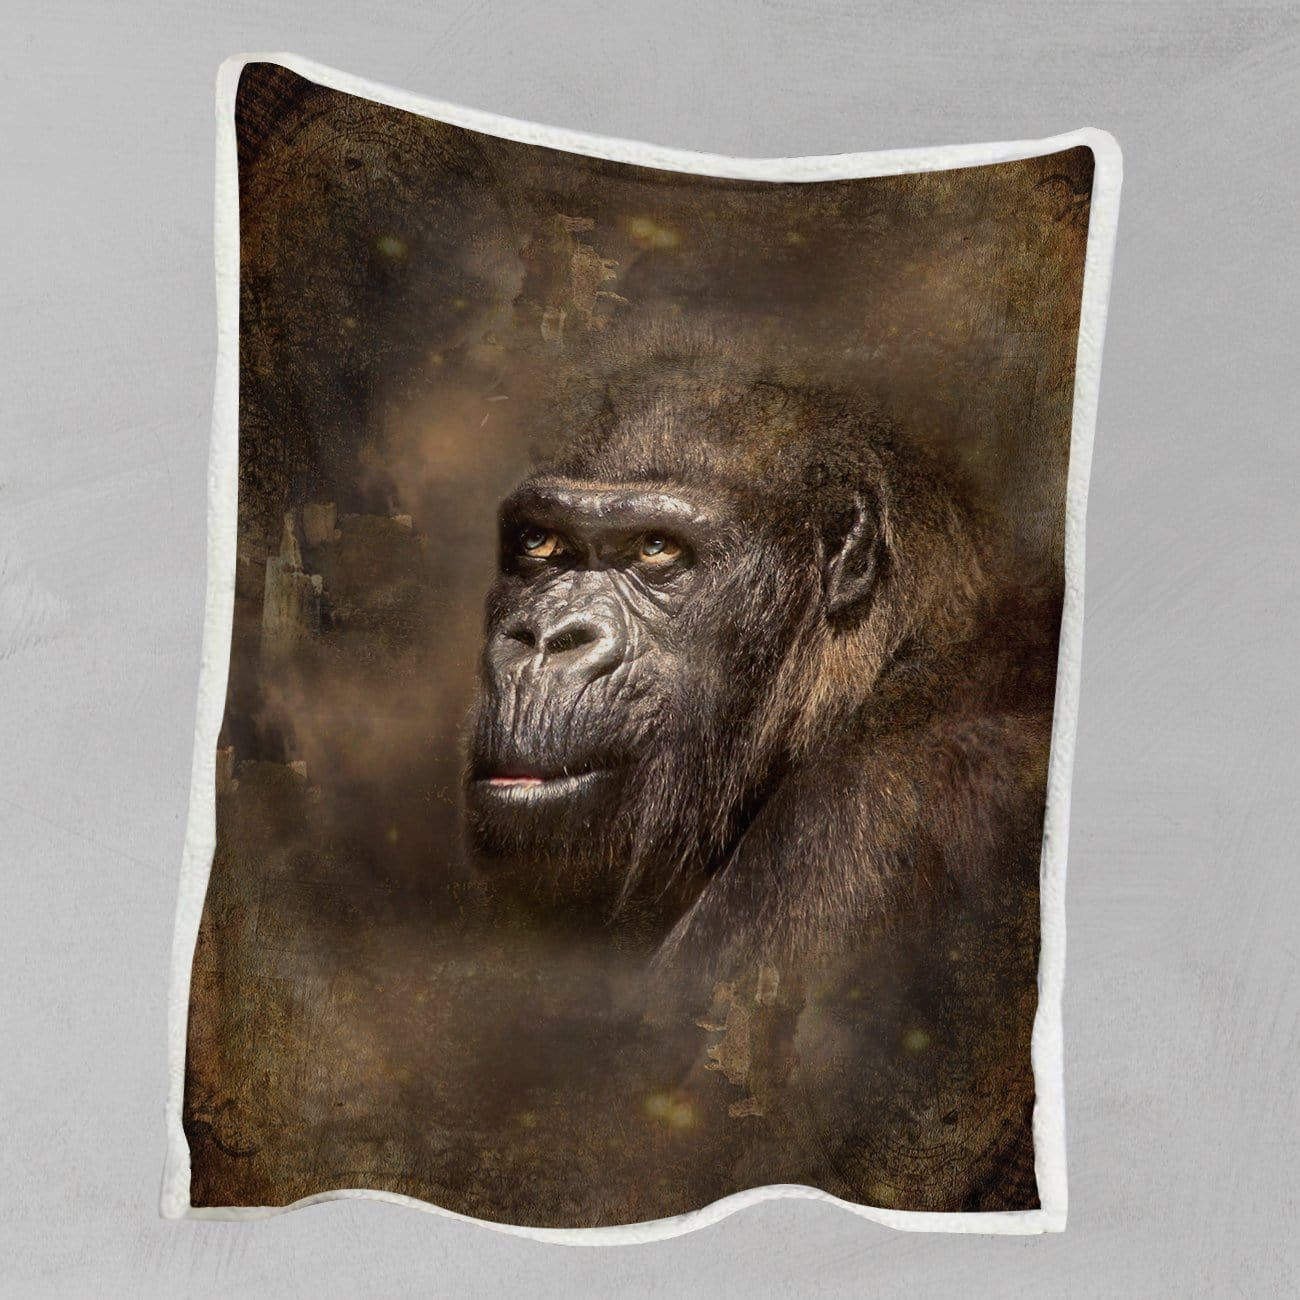 King Kong Gorilla Blanket-King Kong Gorilla-Little Squiffy